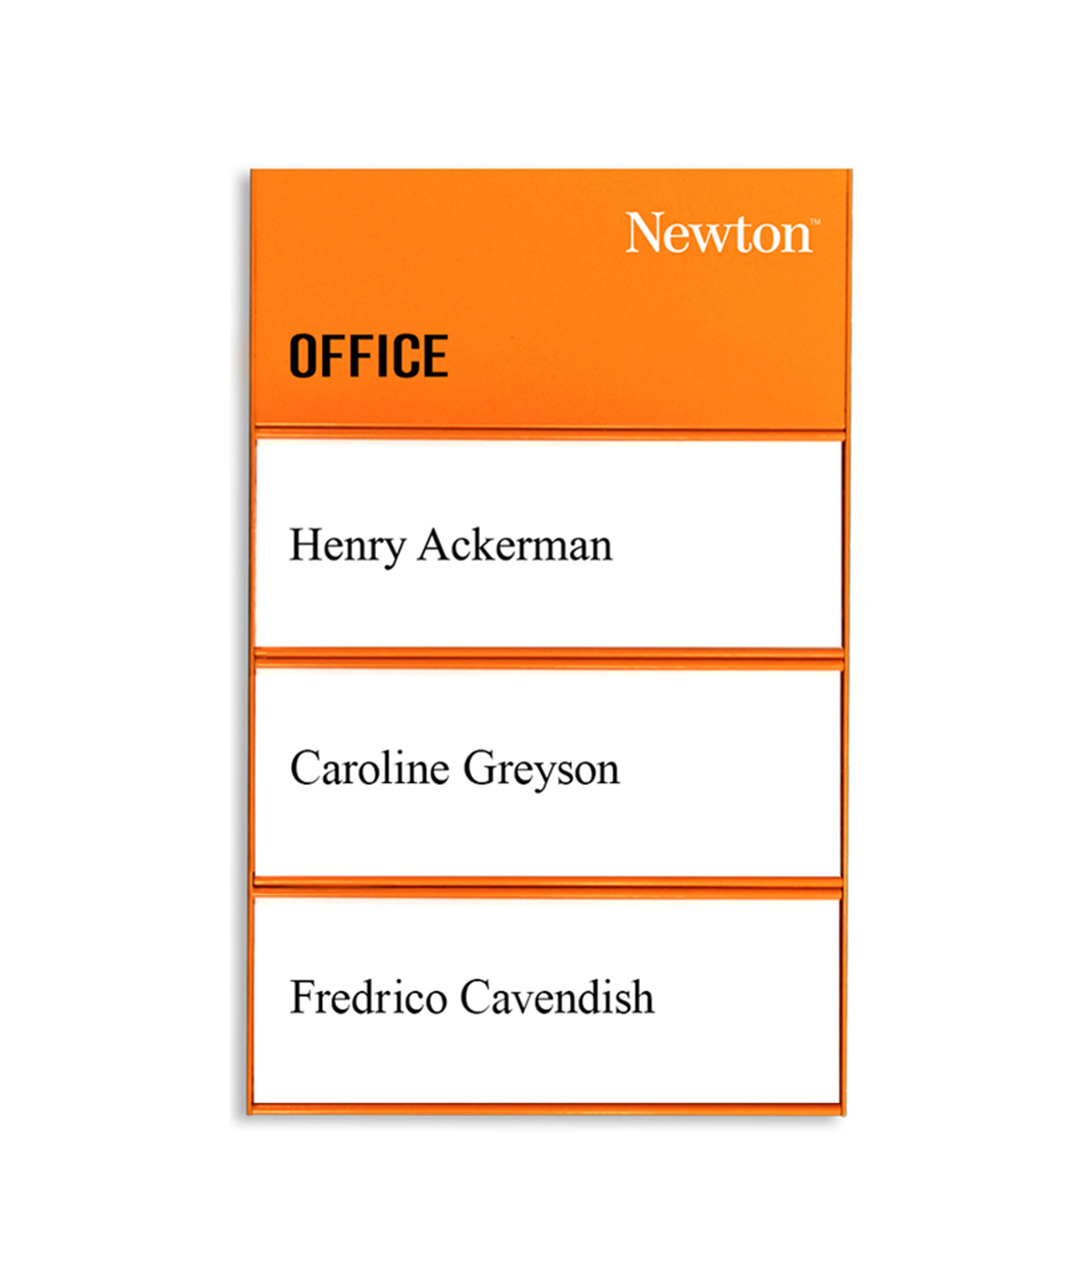 Room Sign / Name Plate (SL1410-ORANGE)